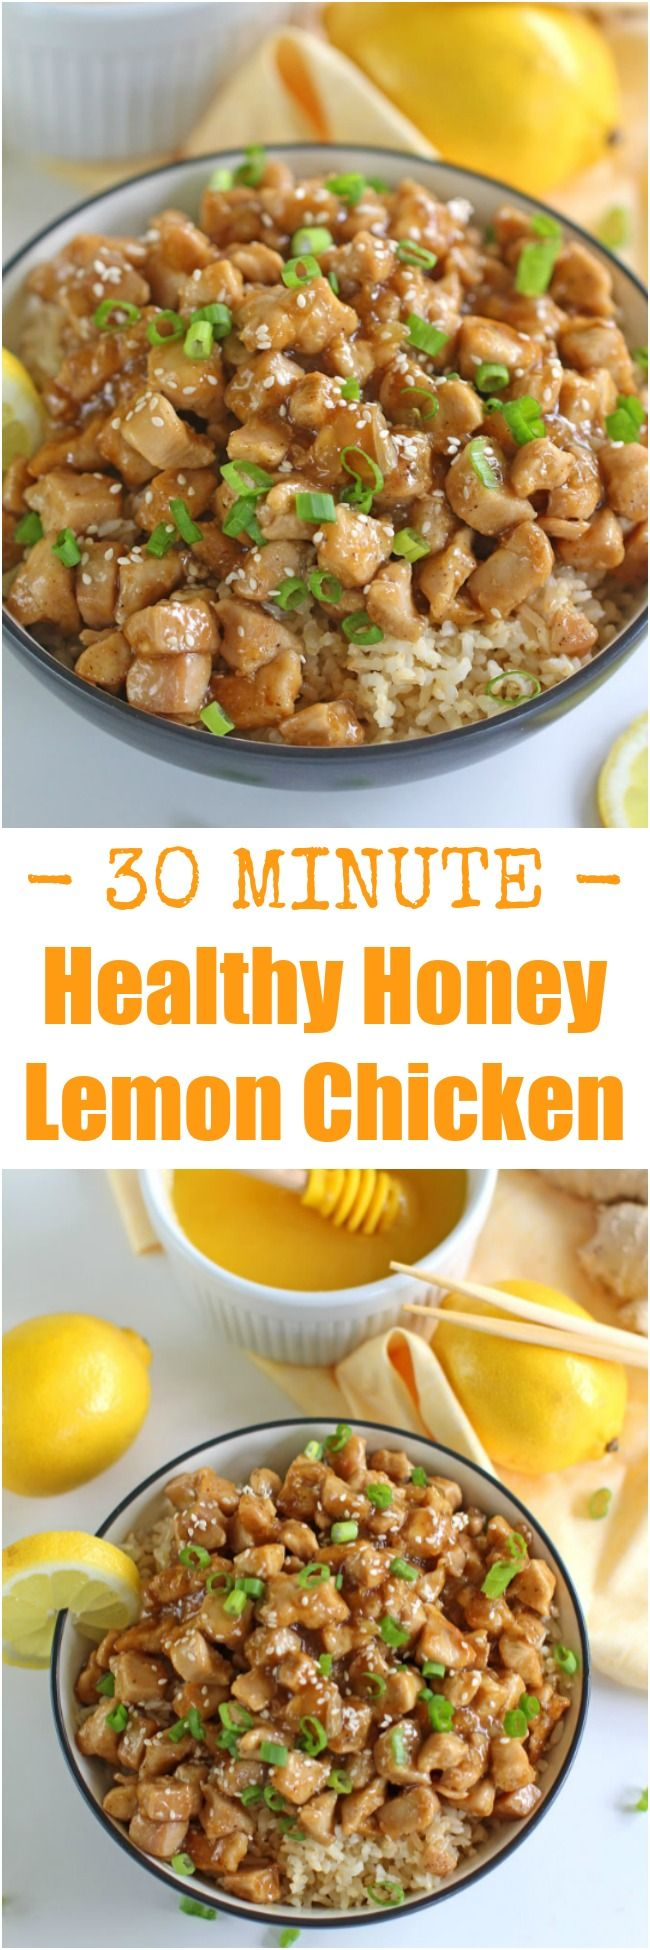 Healthy Honey Lemon Chicken is one of the fastest, most delicious and flavorful dinners you can make in 30 minutes! Not fried and with no processed sugar!